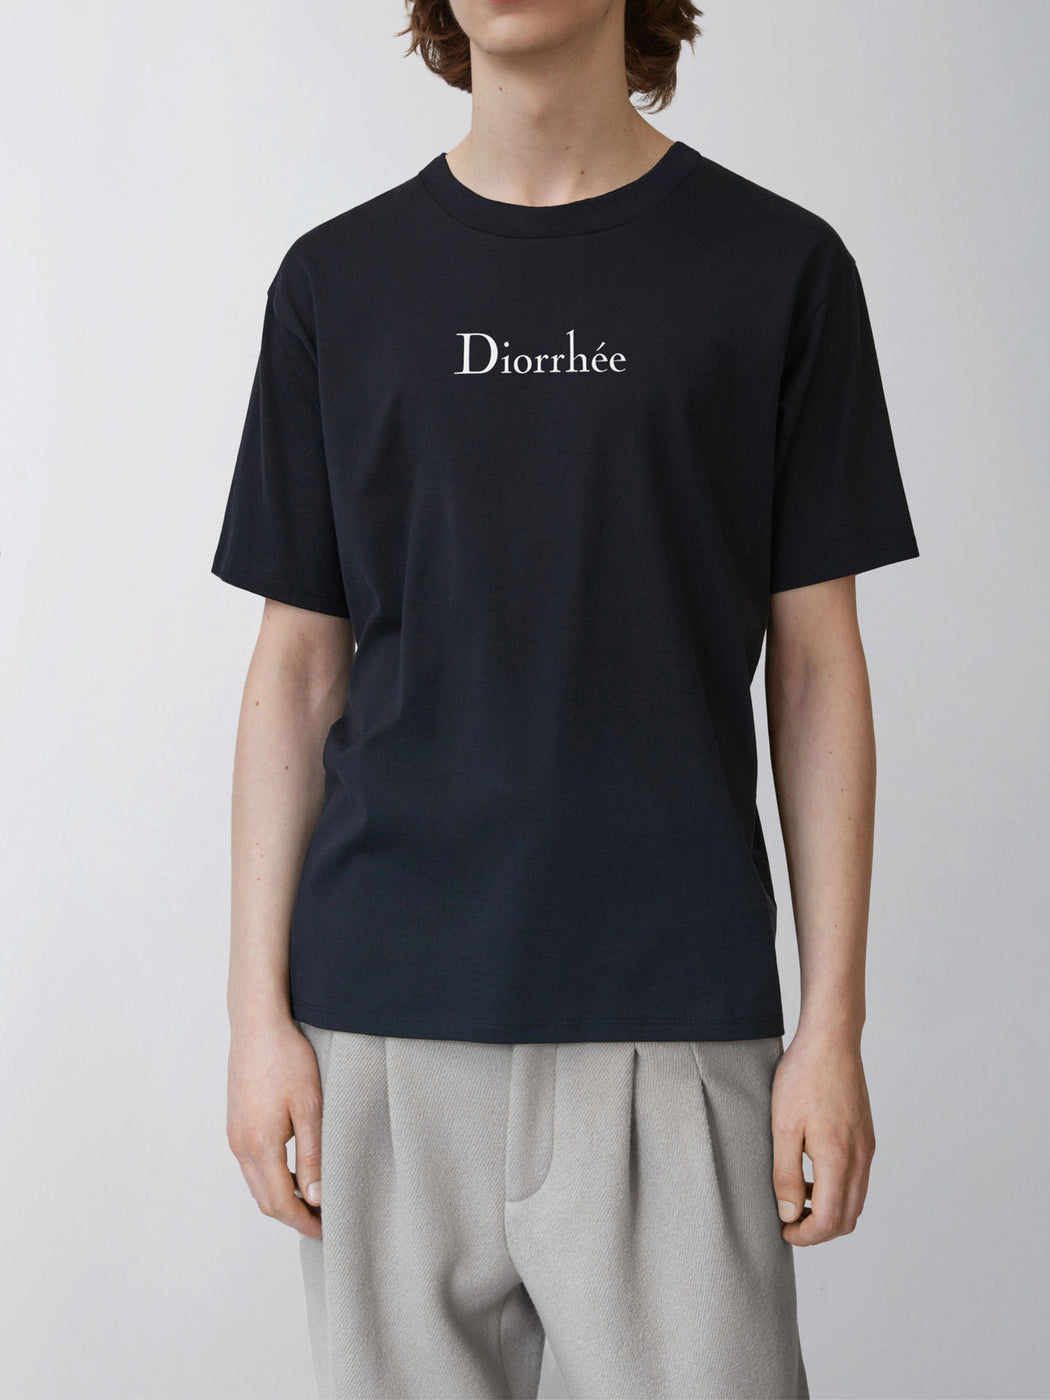 Black Diorrhée T-shirt